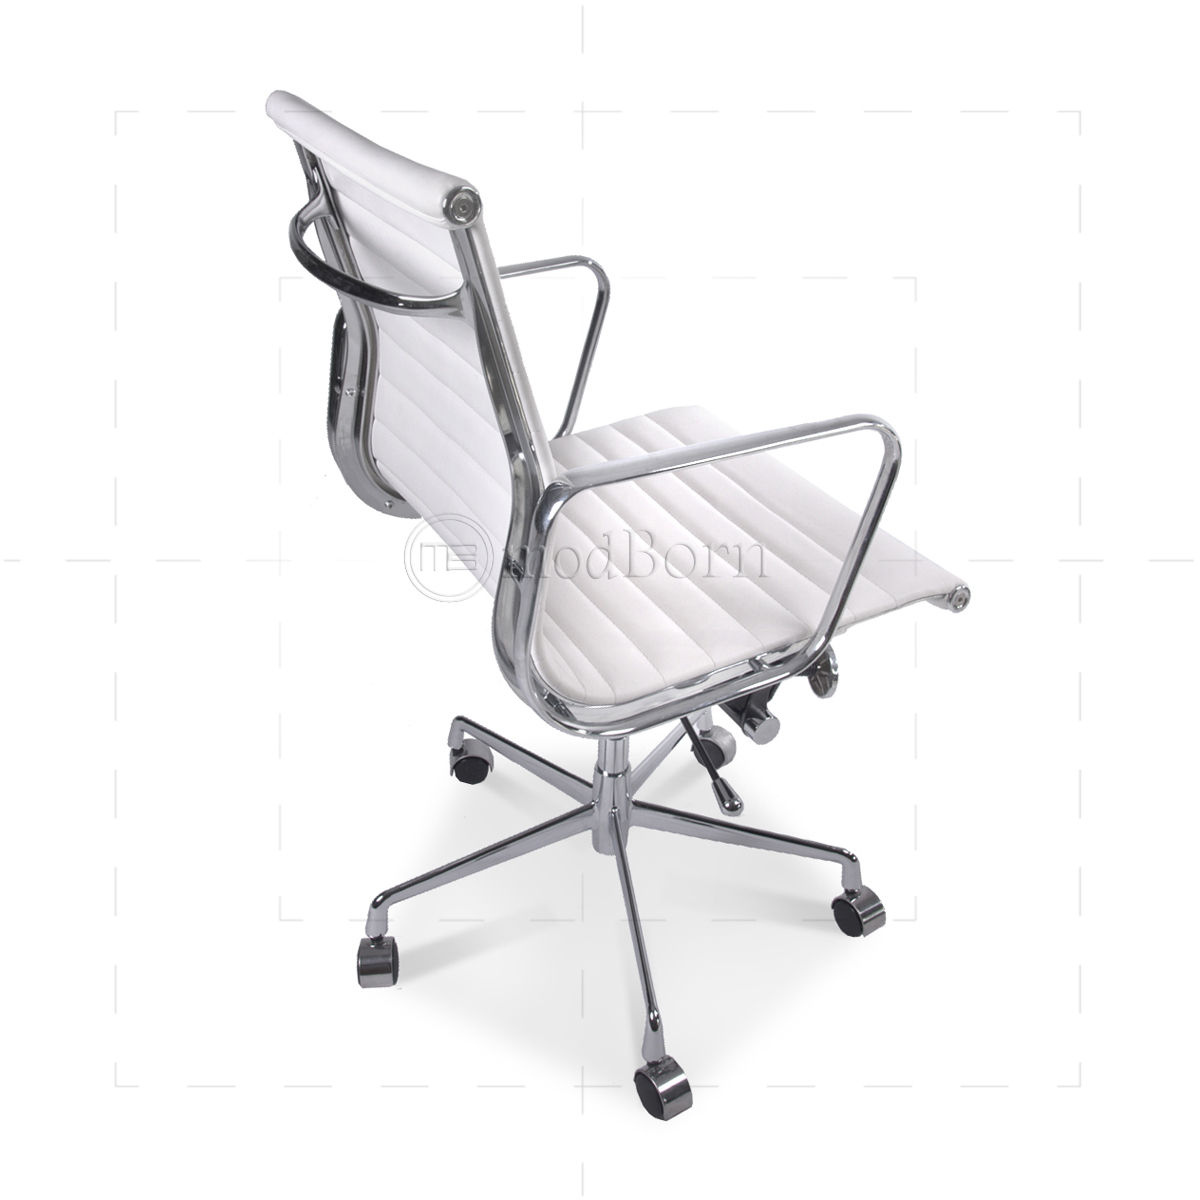 ea117 eames style office chair low back ribbed white leather replica. Black Bedroom Furniture Sets. Home Design Ideas